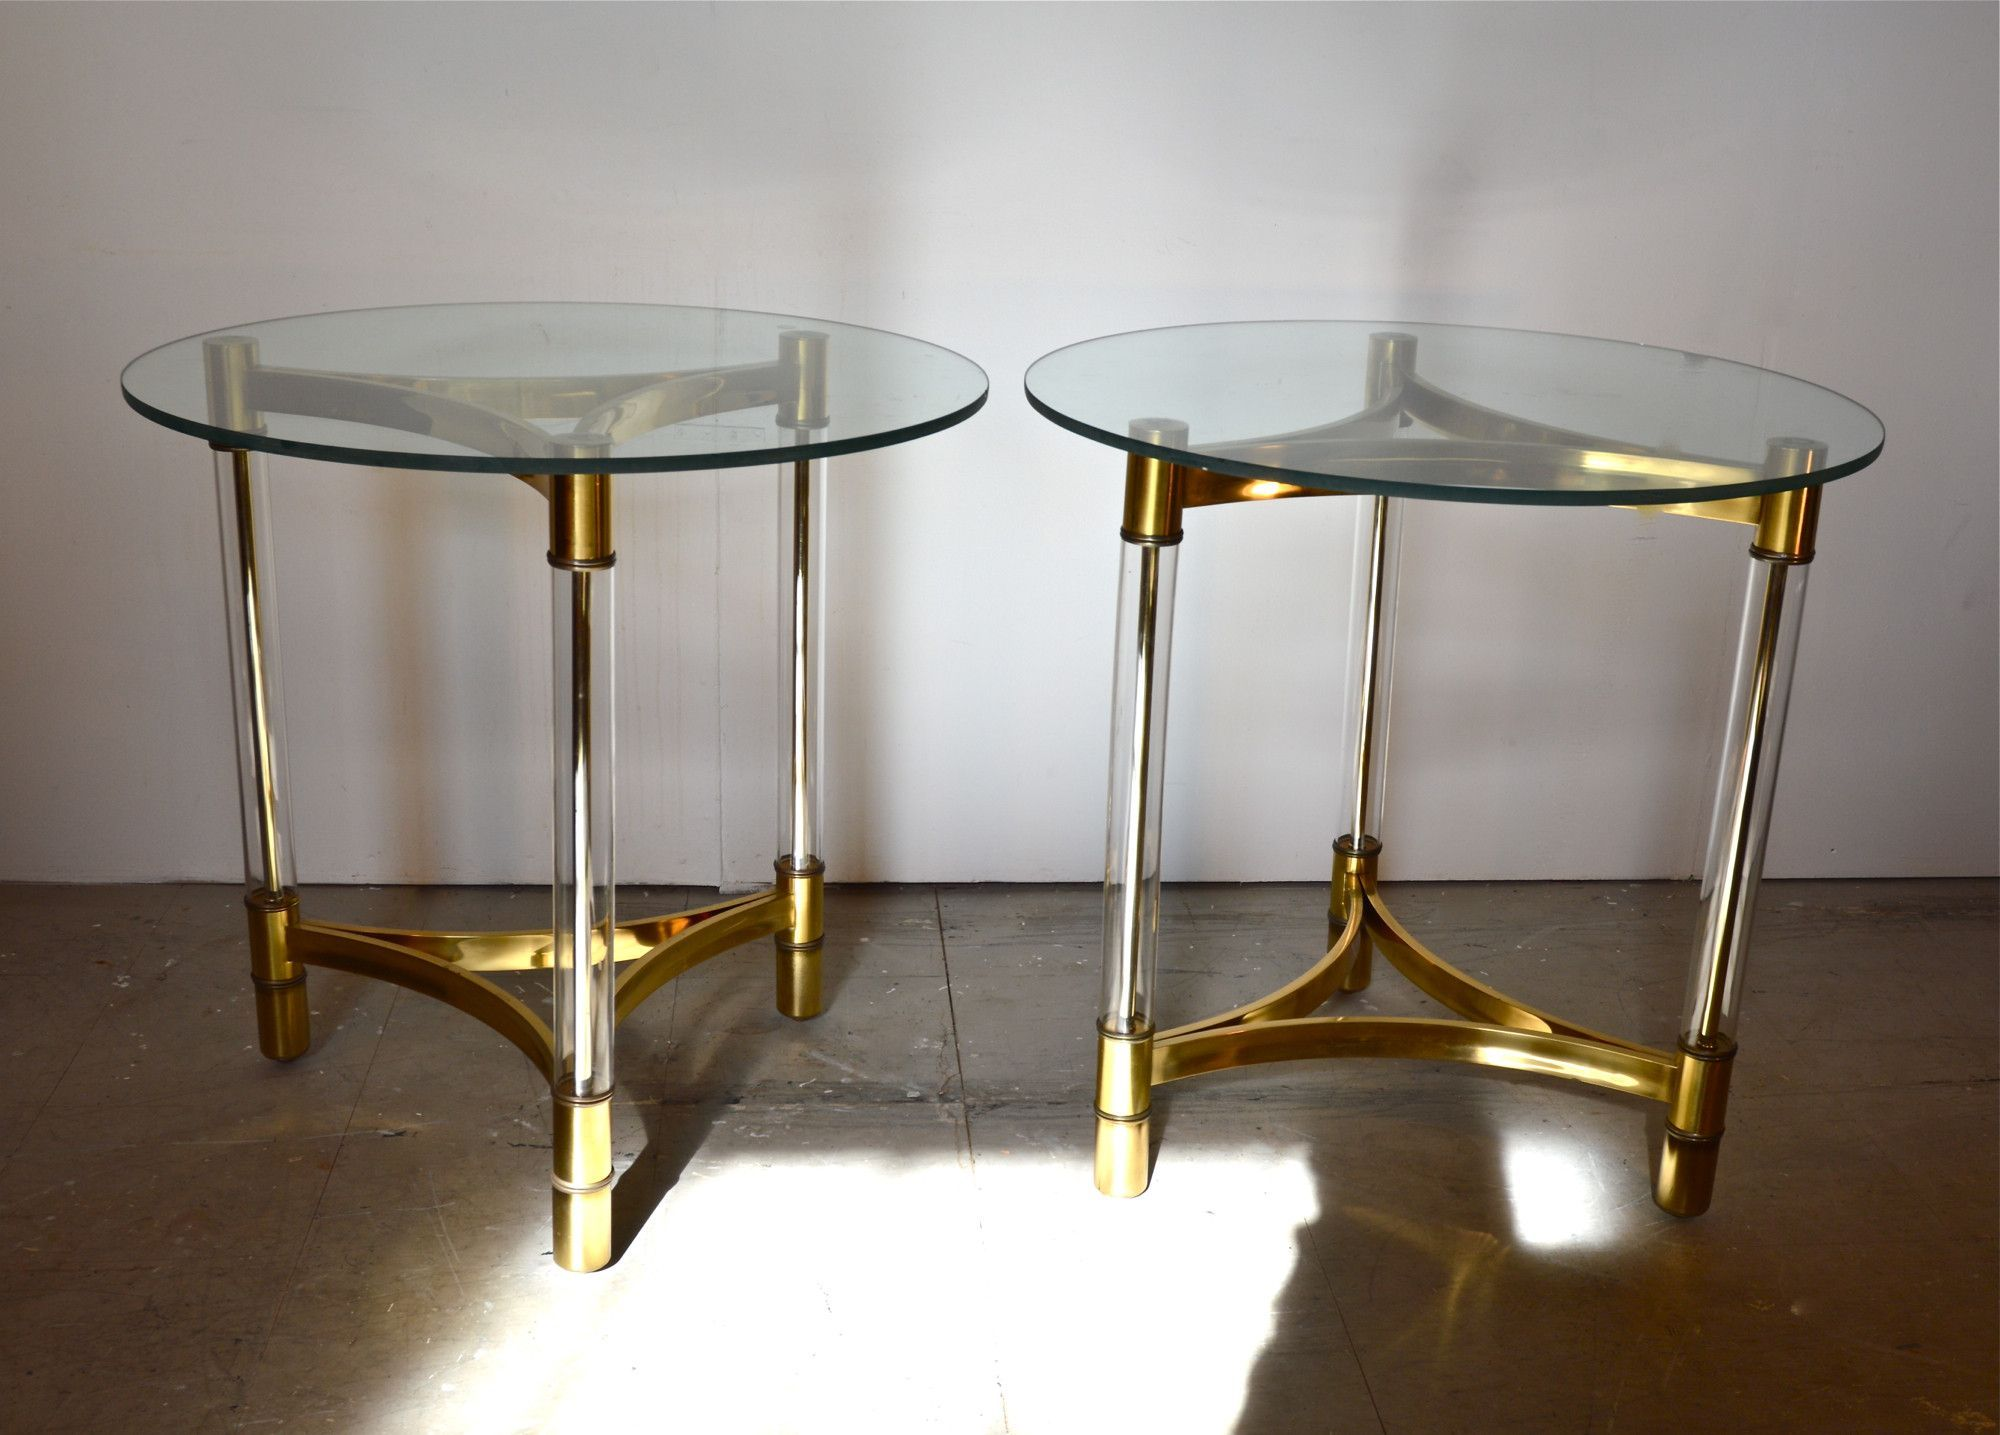 brass and glass end tables products table big lots furniture floor lamp magazine rack modern ideas small accessory beds henzler lazy boy porch hanging entertainment center antique